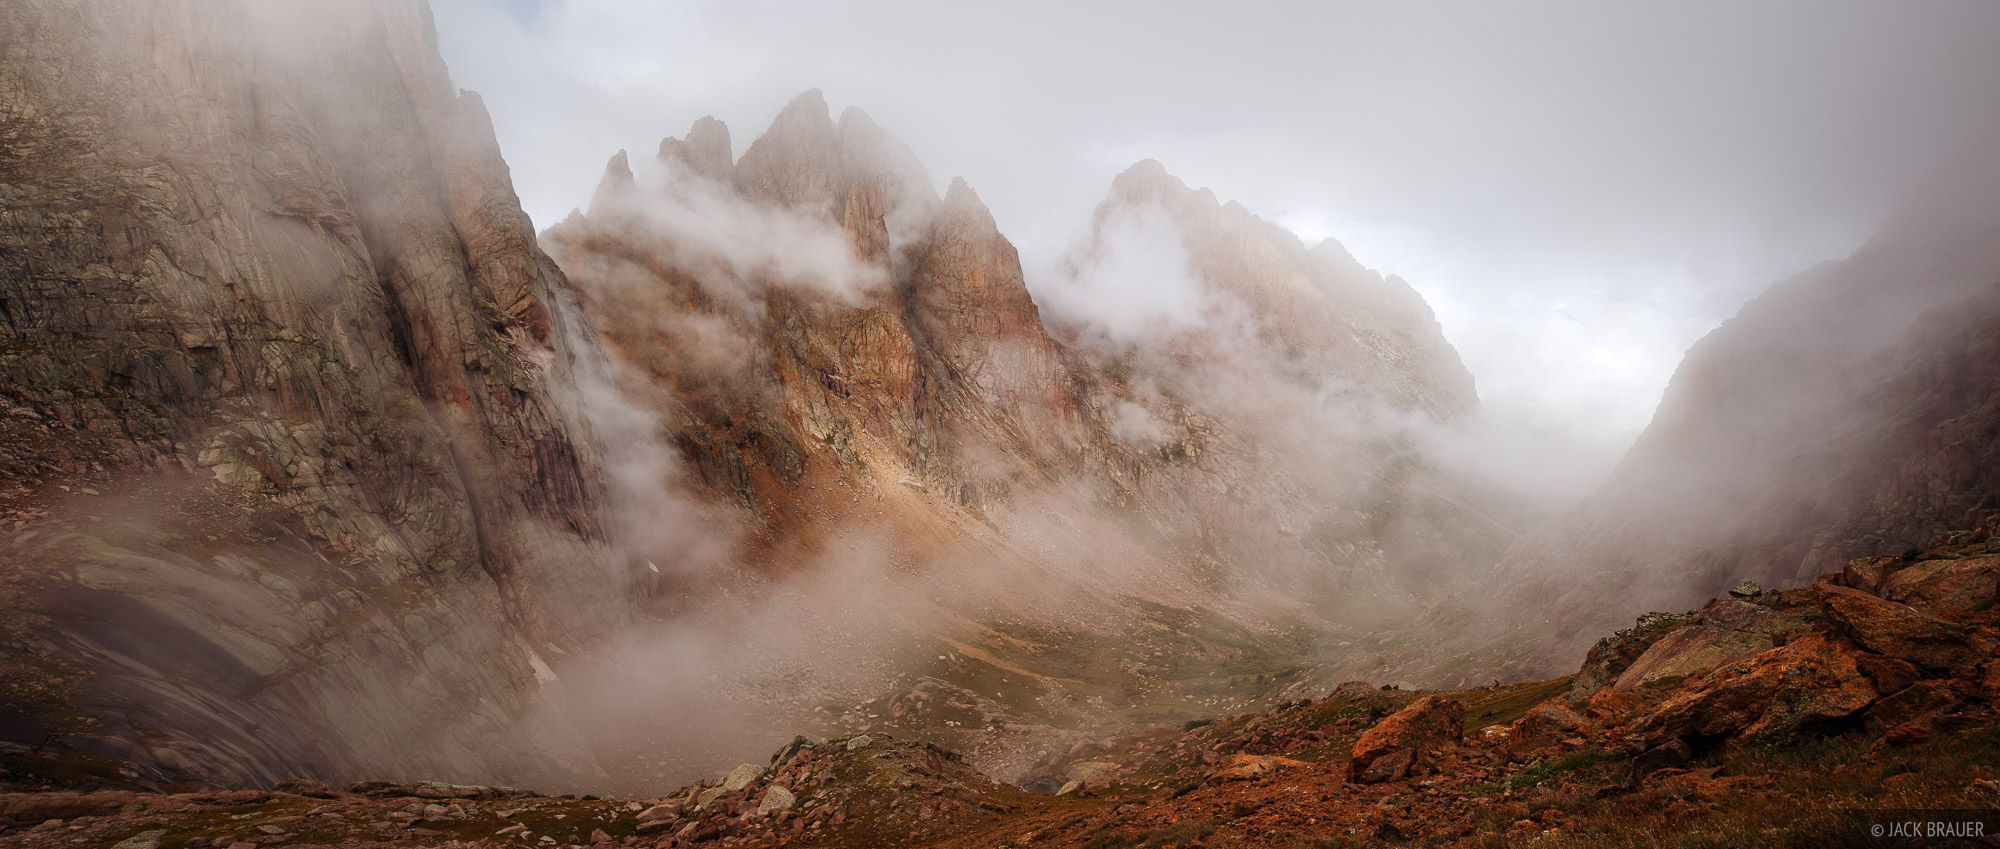 Needle Mountains, clouds, San Juan Mountains, Colorado, photo